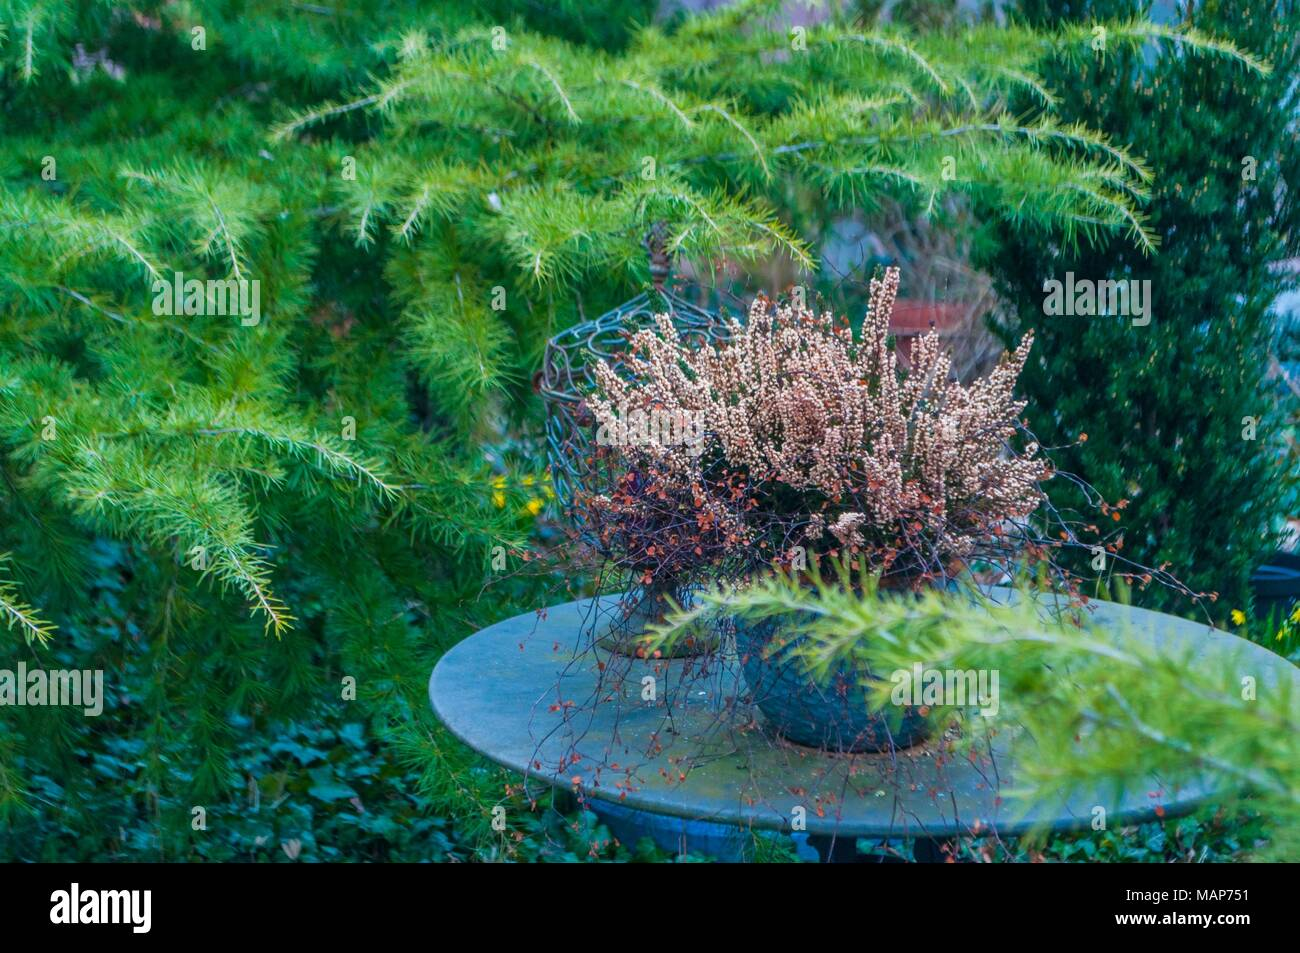 Photo of  old marble table and pot,taken in garden- Stock Photo